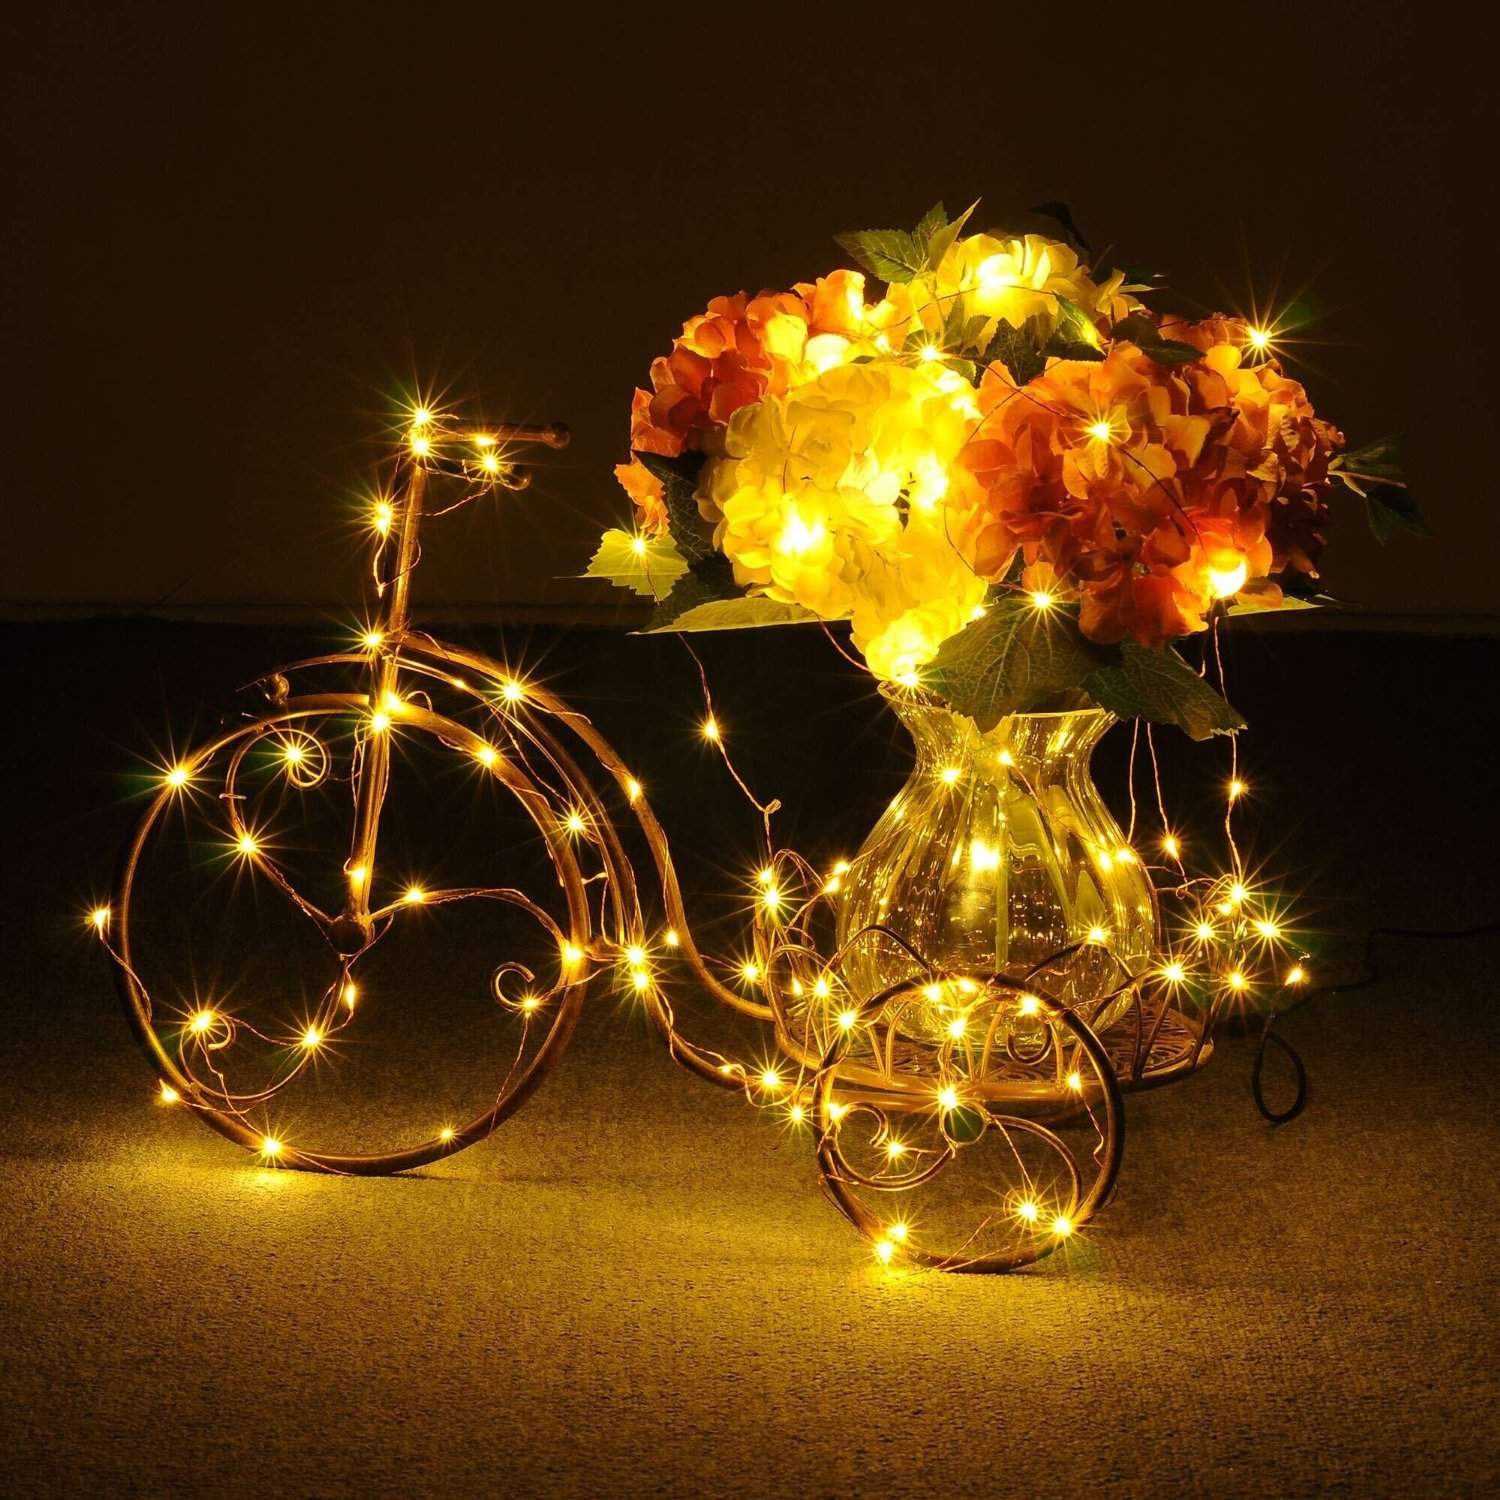 BOLWEO 9 Modes Battery Powered Christmas String Lights with Remote Timer, 5M/16.4Ft 66LEDs Warm White Fairy Copper Wire Lights for Indoor Outdoor Home Garden Christmas Tree Bedroom Decoration